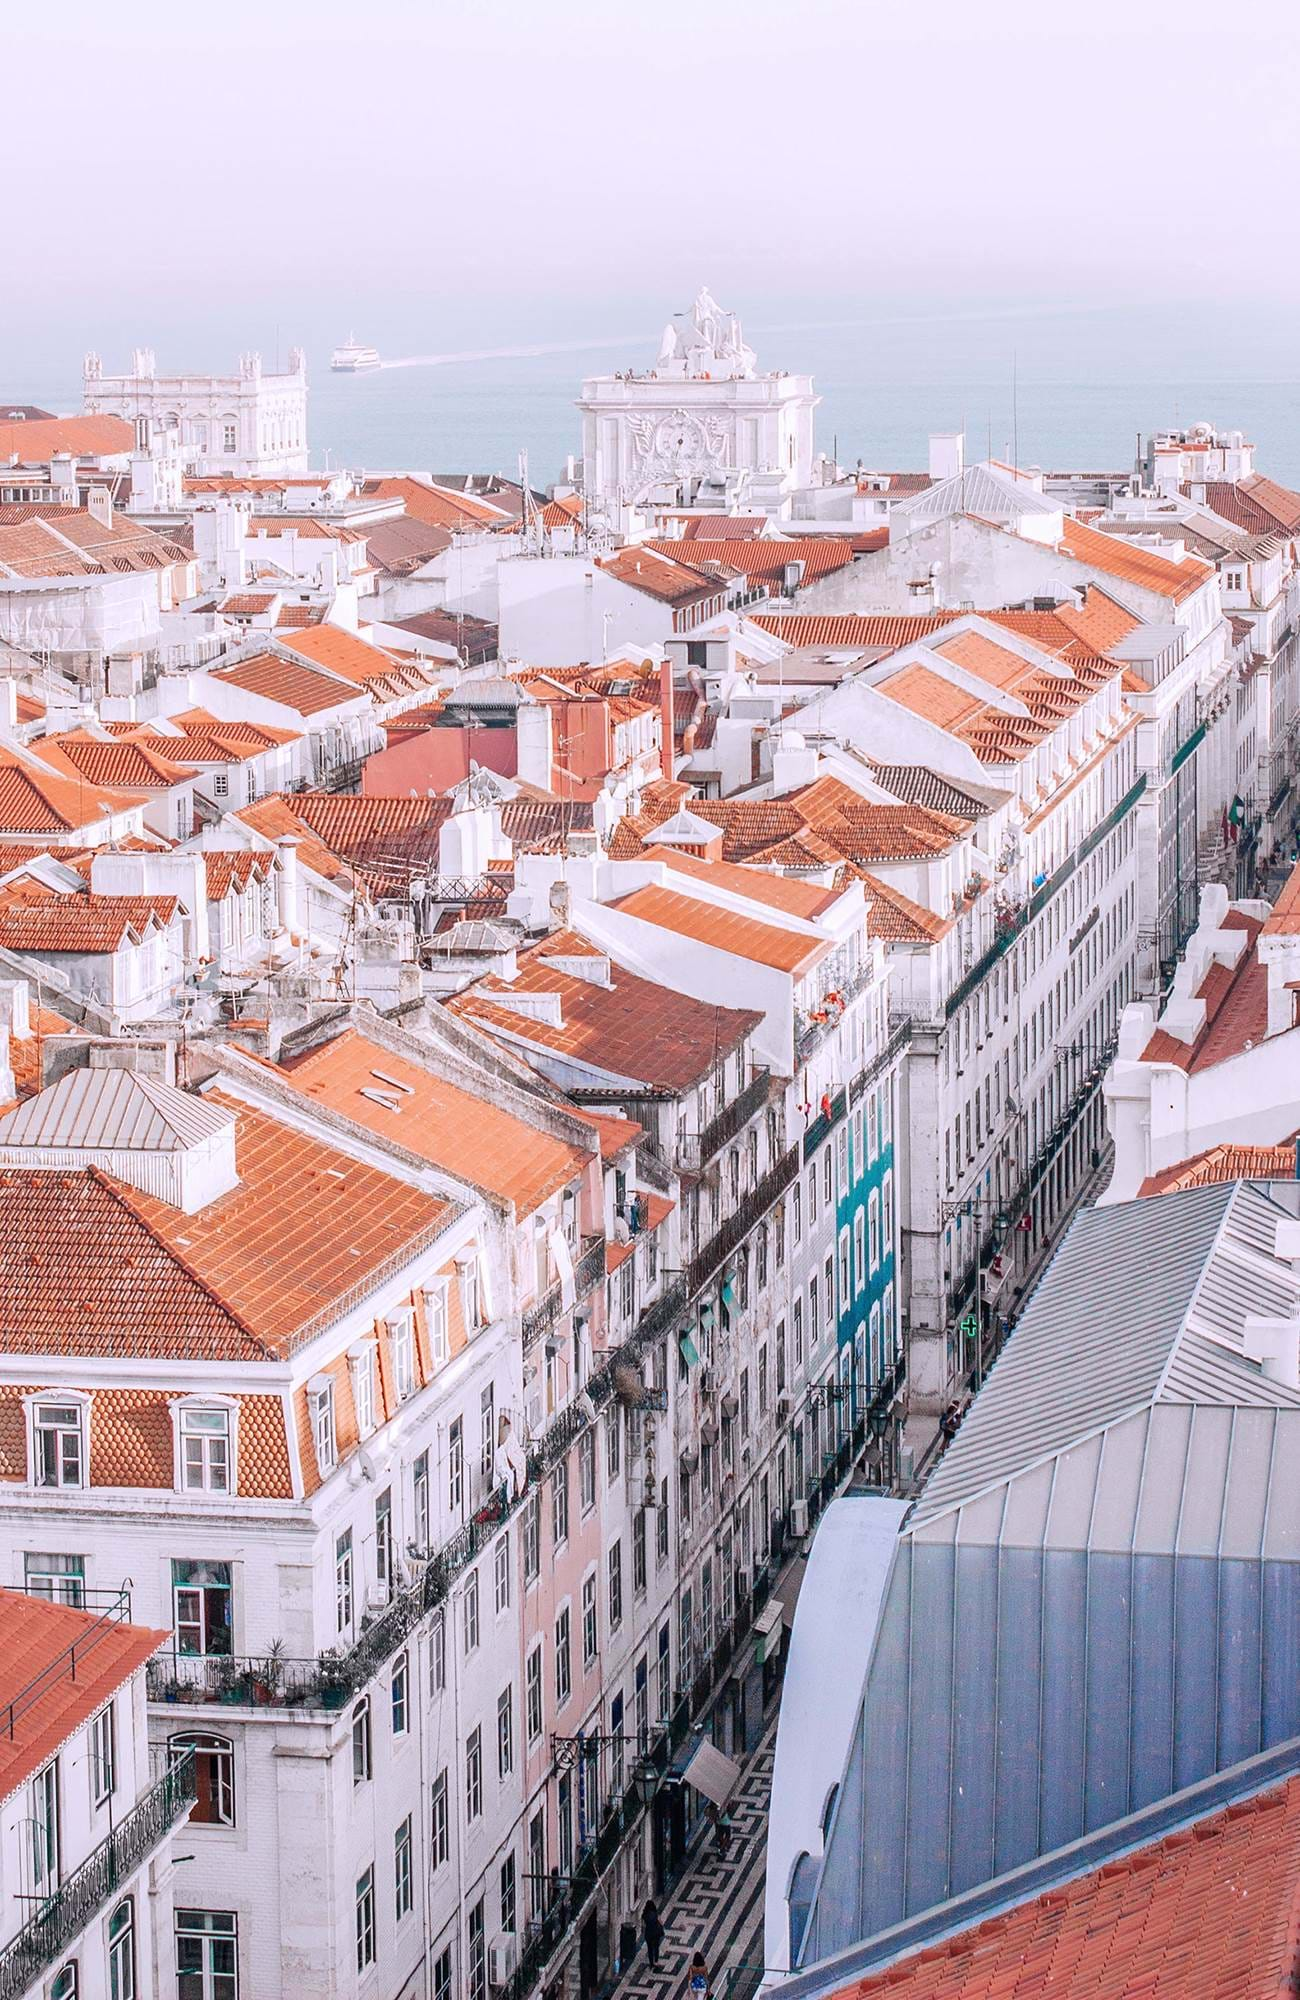 lisbon-city-view-from-above-sidebar